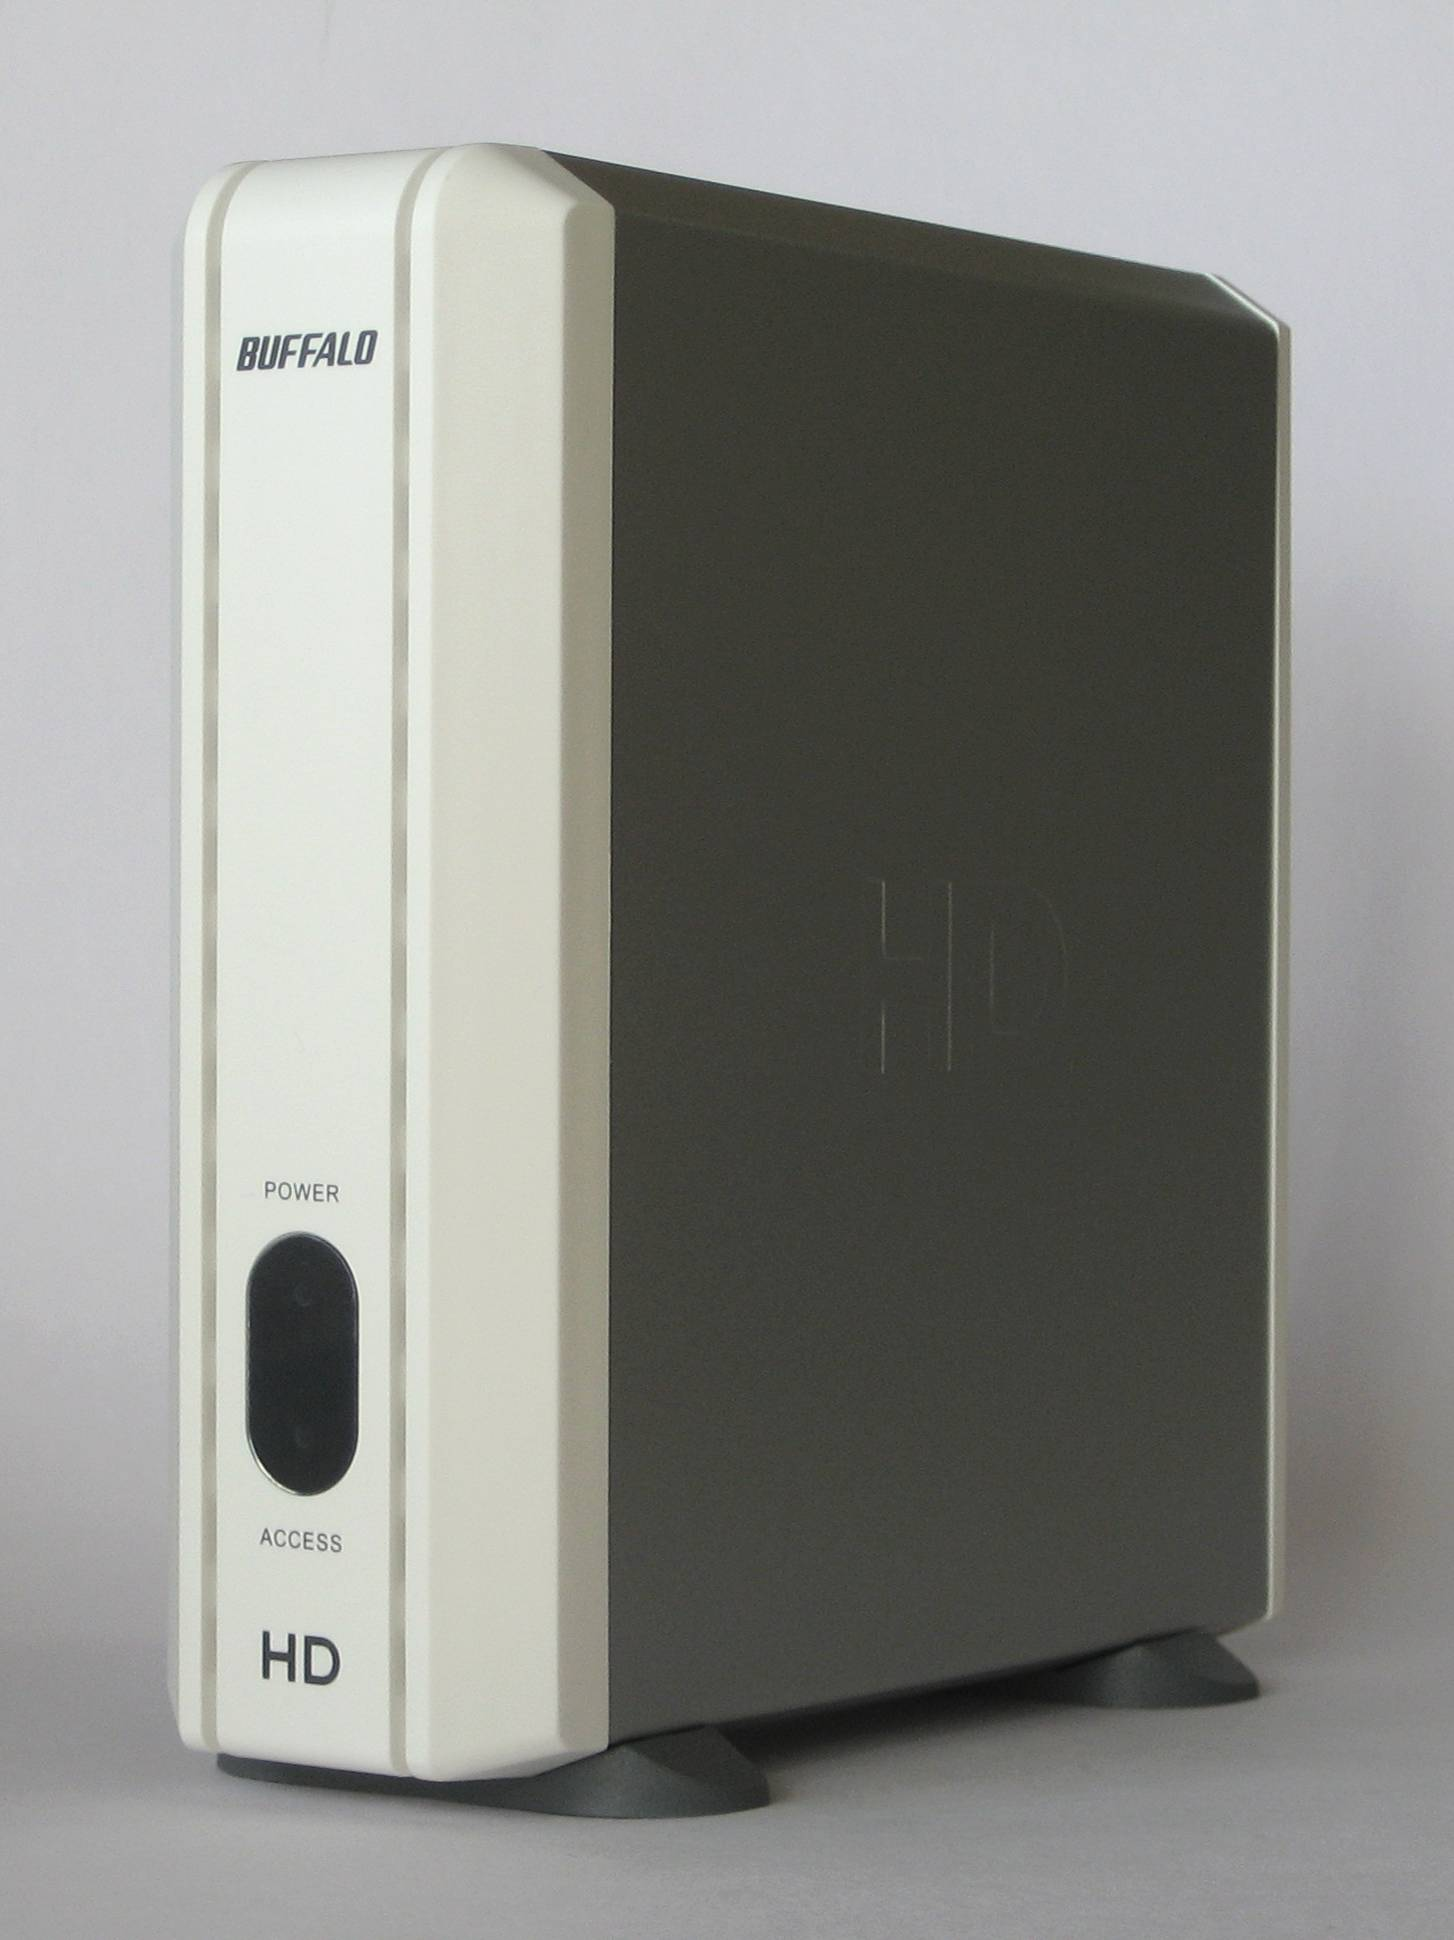 Factory-assembled Buffalo external hard drive in a disk enclosure